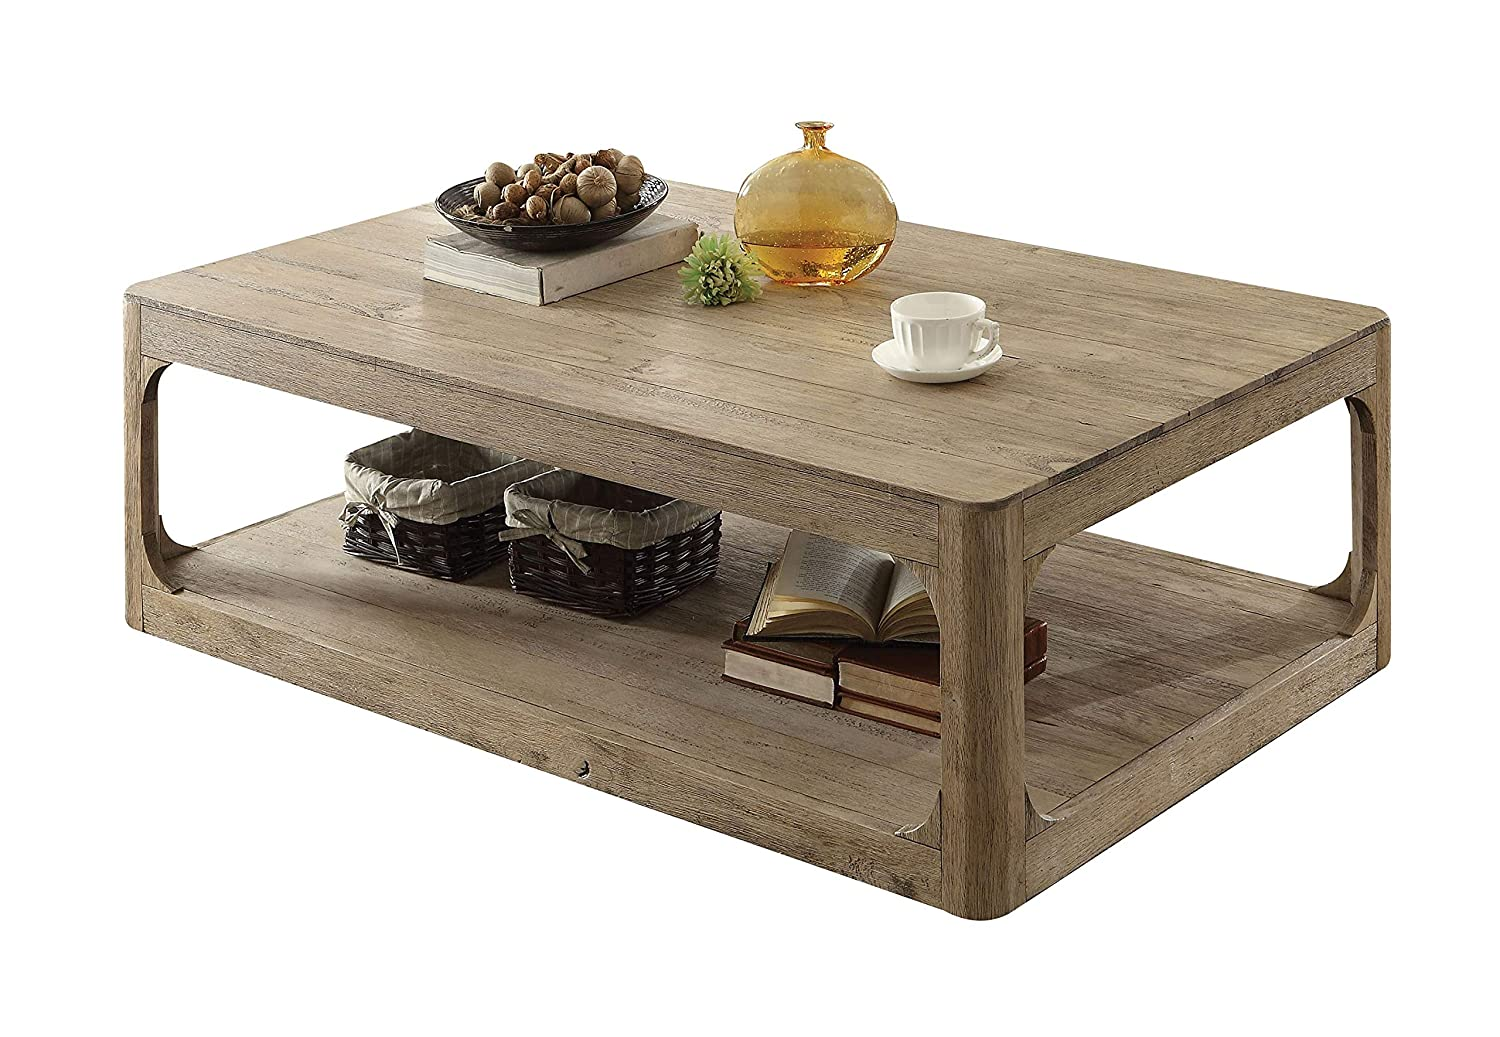 Amazon com major q 55 l transitional style natural oak finish rectangular wooden living room occasional coffee table with open shelf 9082235 kitchen